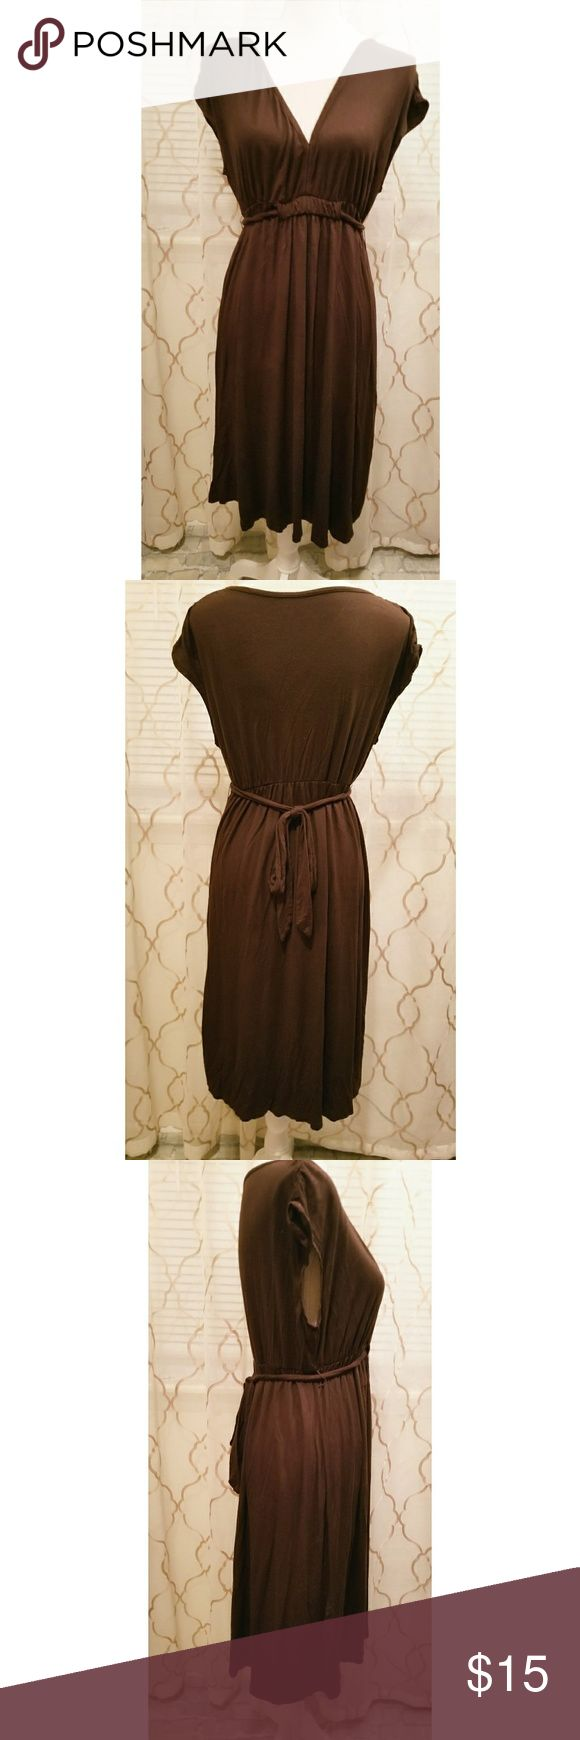 Maternity Dress Brown maternity dress Size XXL Ties in the back  *F Liz Lange for Target Dresses